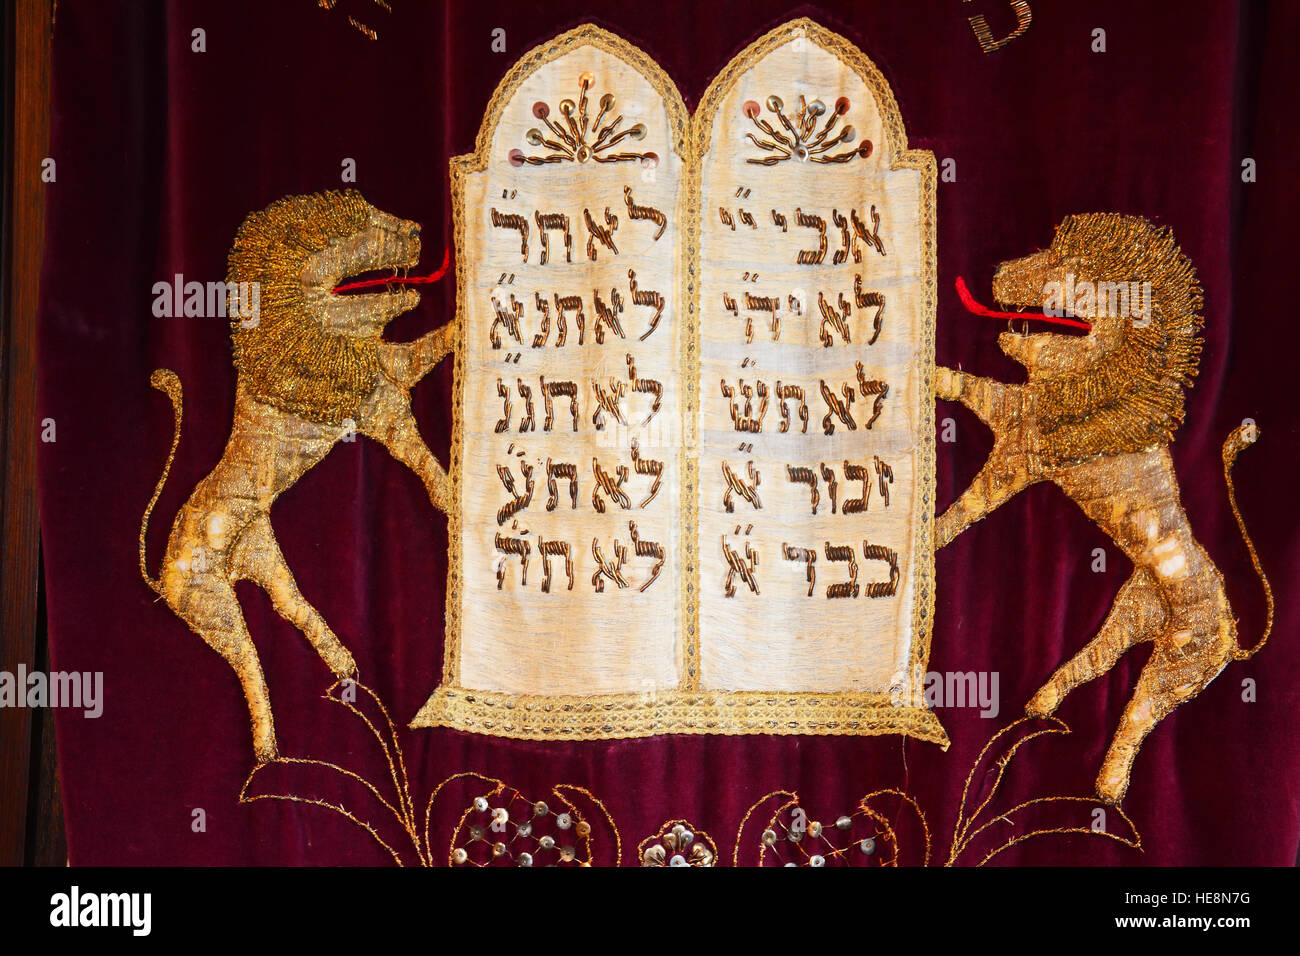 Torah curtain art, Israel Stock Photo